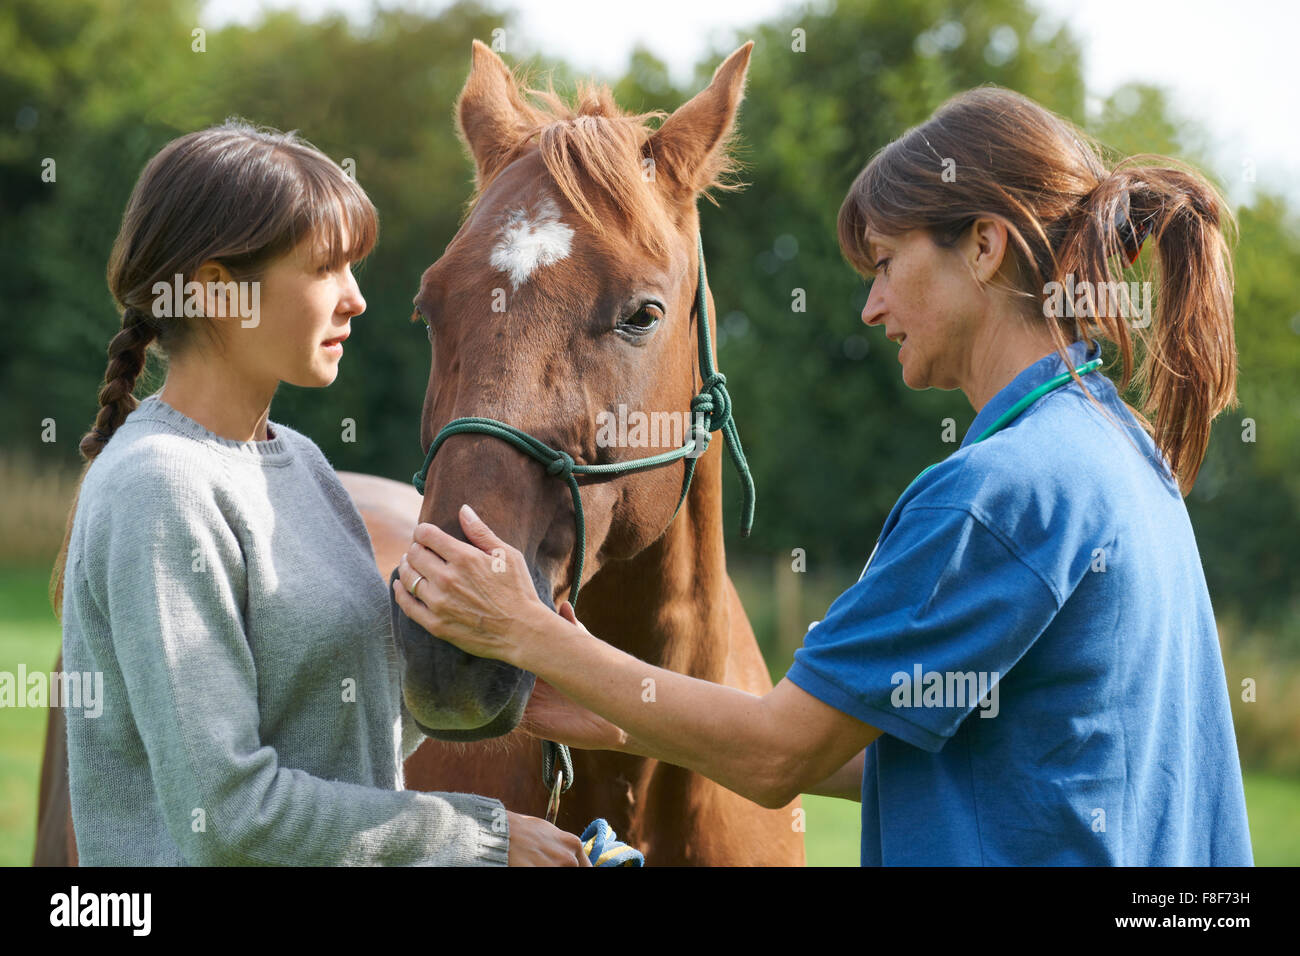 Female Vet Examining Horse In Field With Owner - Stock Image